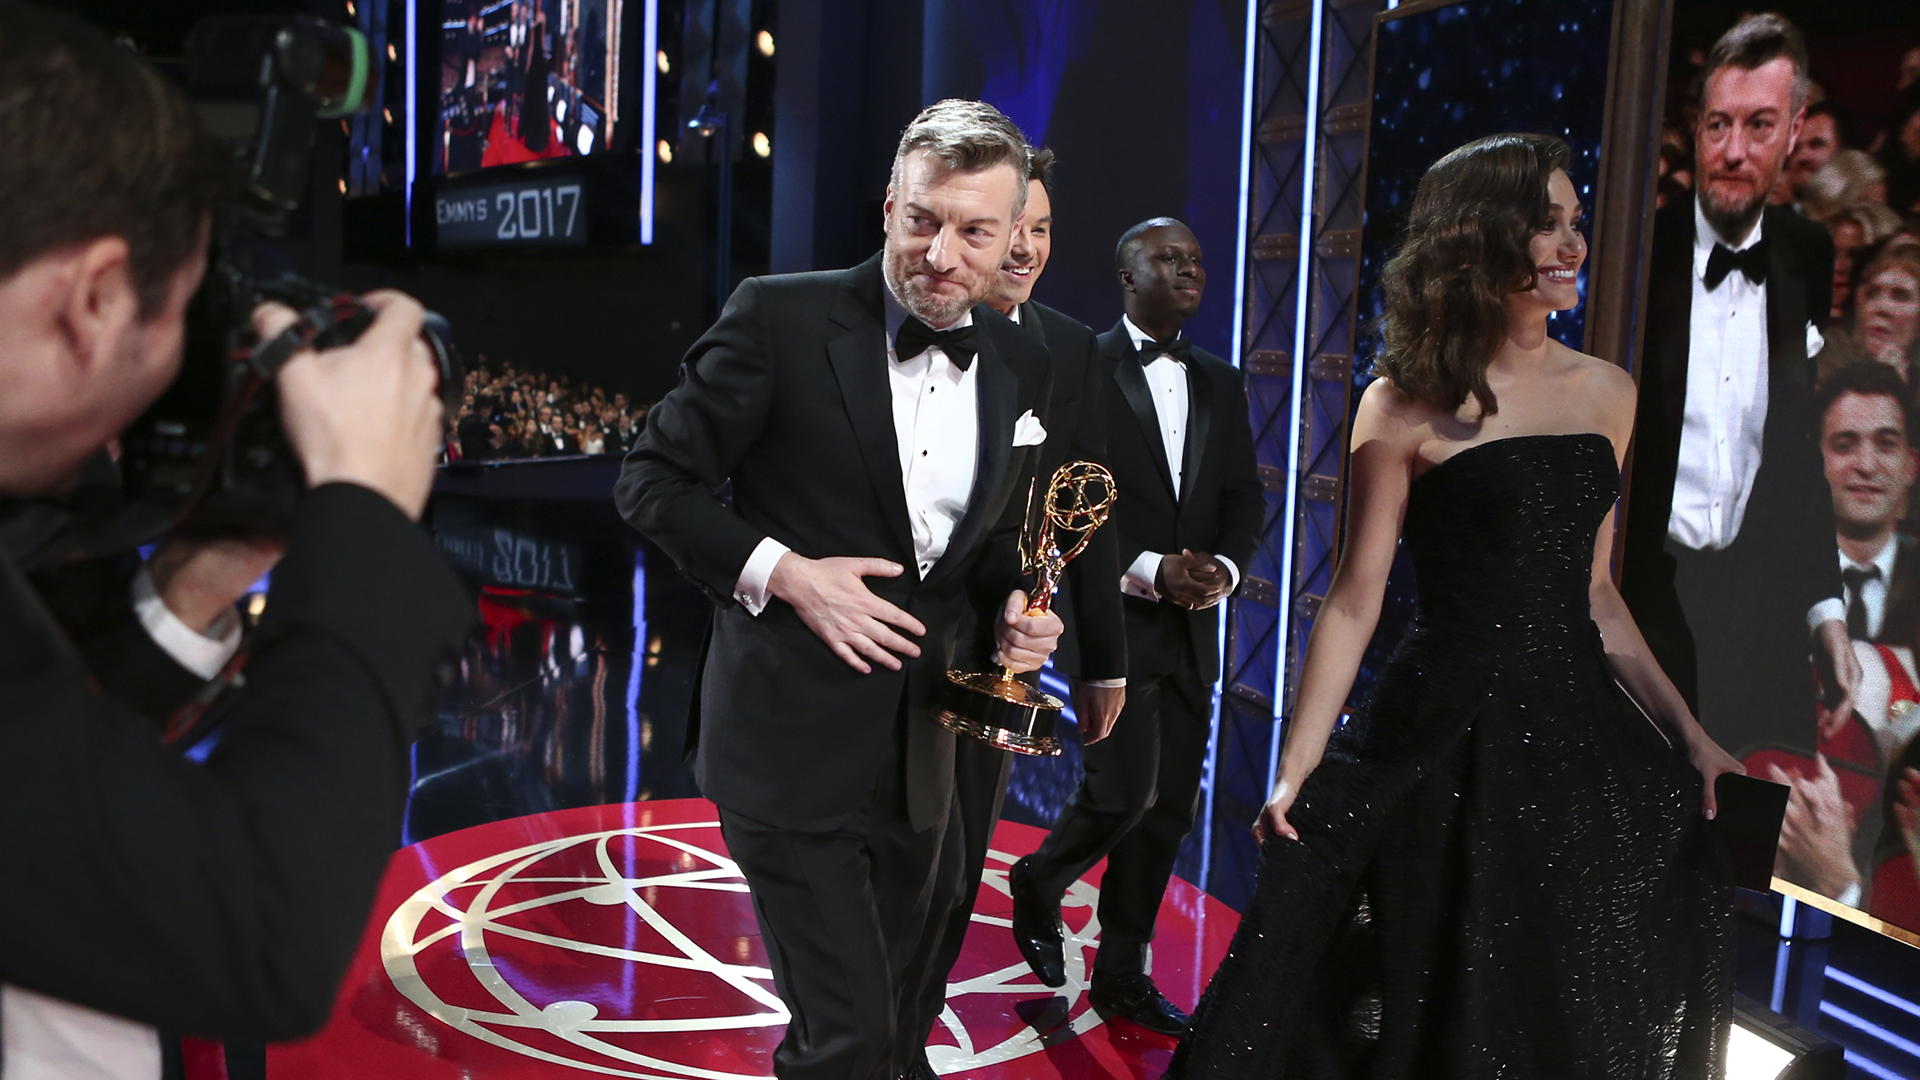 Charlie Brooker wins Outstanding Writing for a Limited Series or Movie at The 69th Emmy Awards.